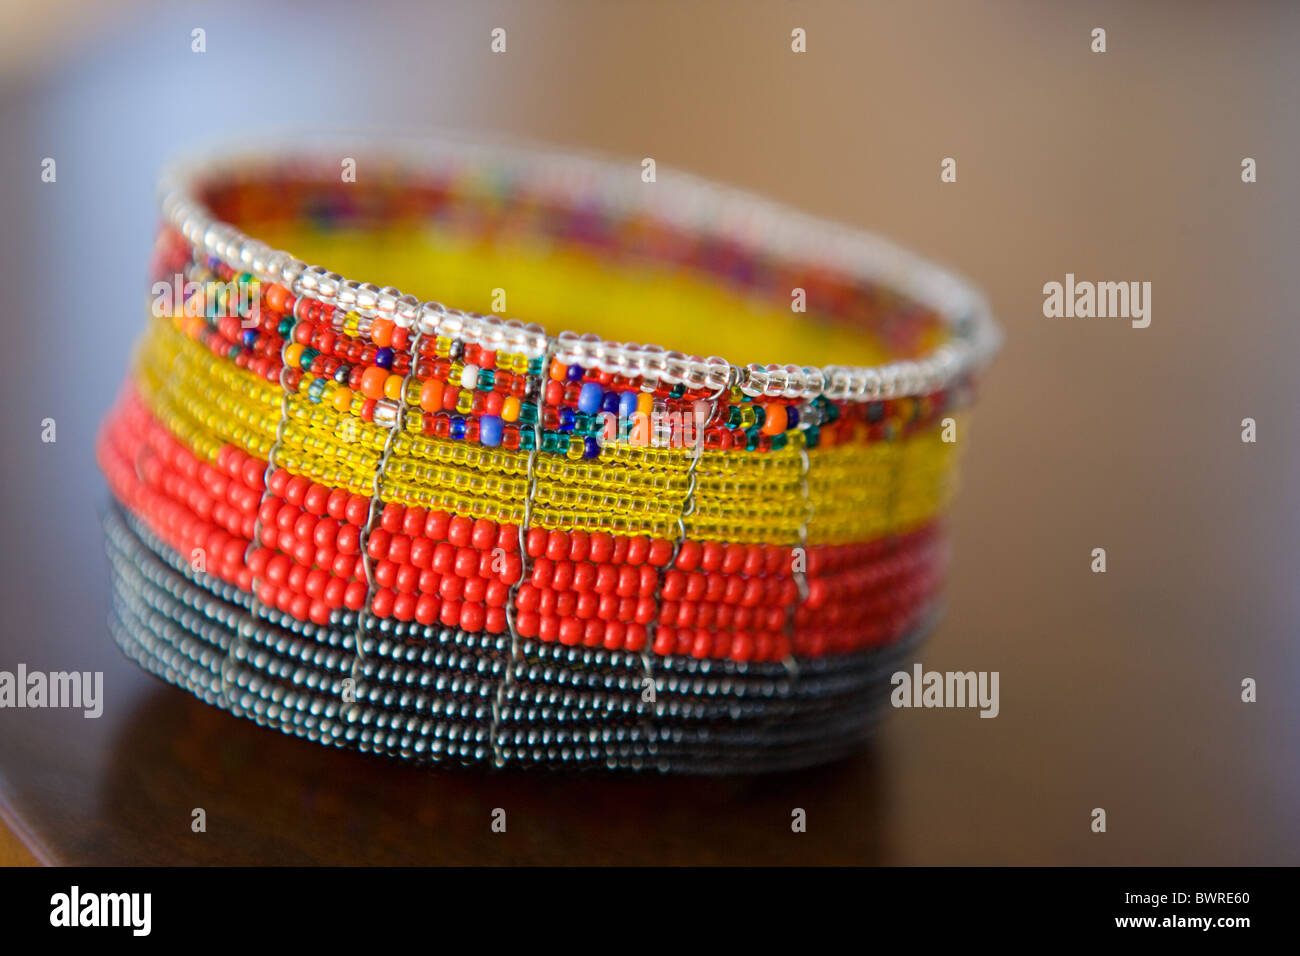 folk art beaded container, hand made, South American - Stock Image